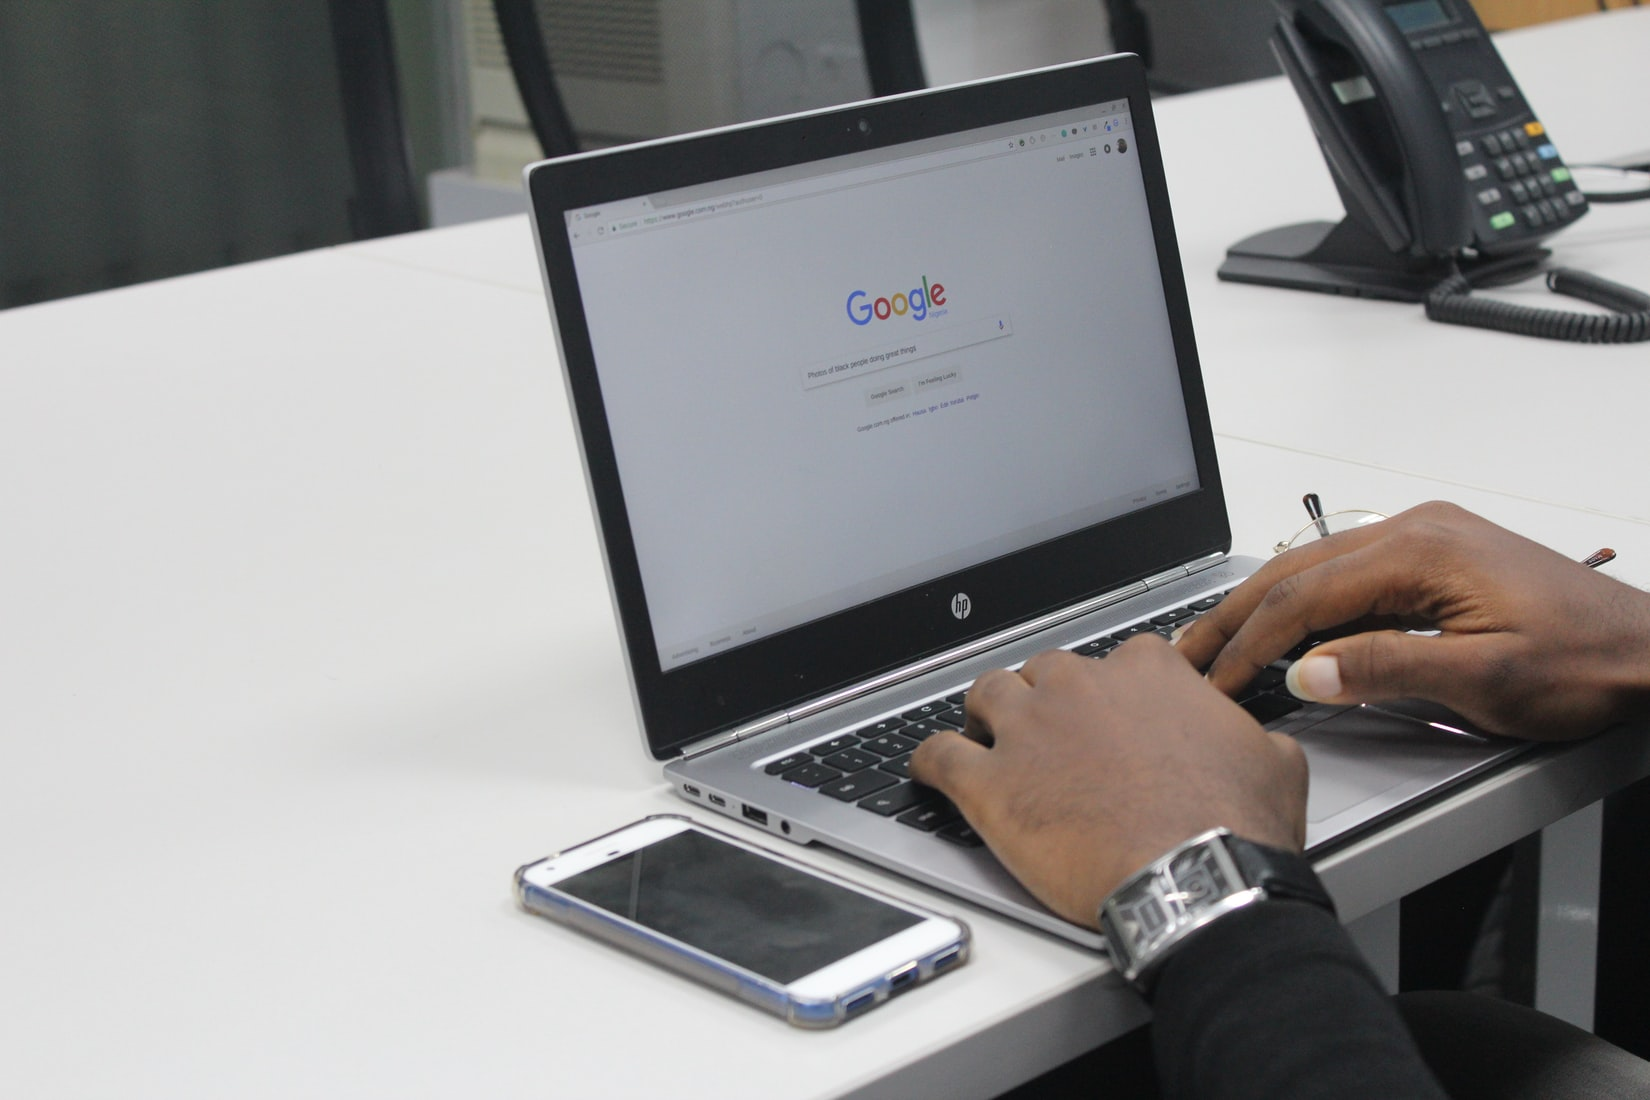 person going on Google on their laptop